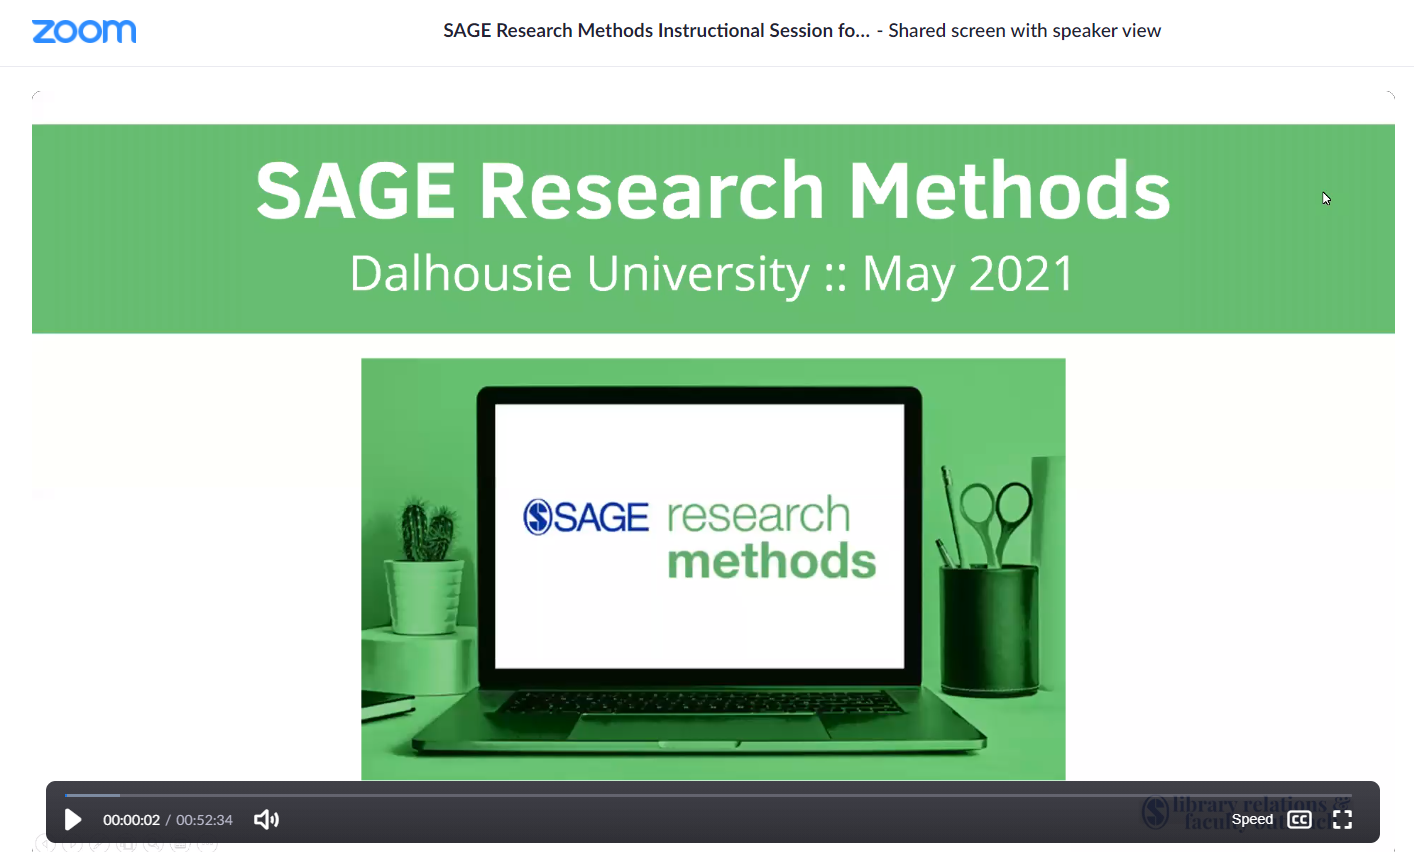 Screen image from the Sage Research Methods Webinar given to Dalhousie University.